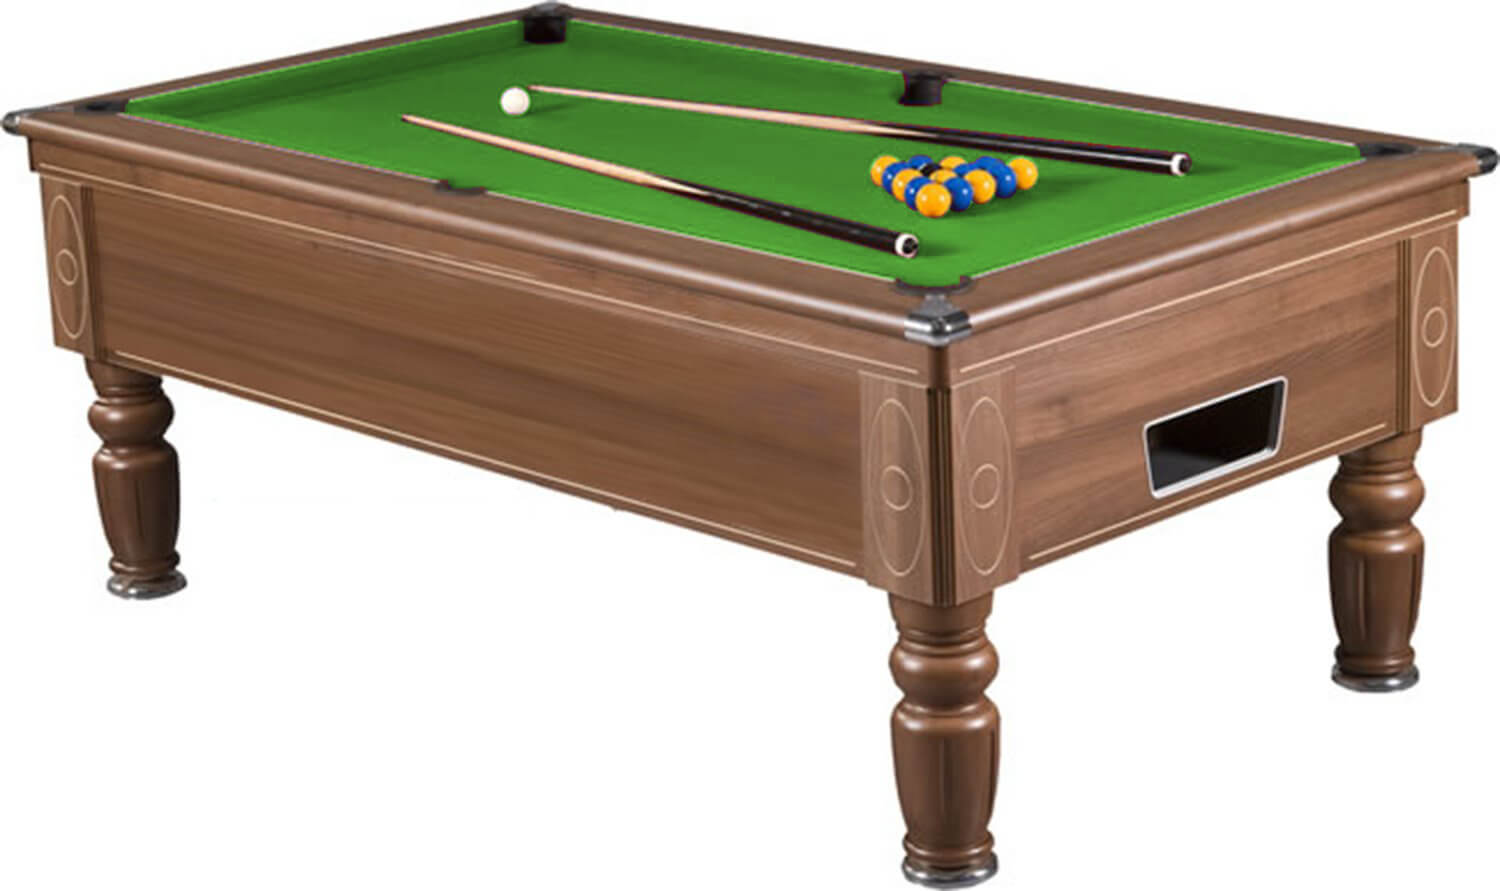 Supreme prince pool table 6 ft 7 ft 8 ft liberty games for Table 6 feet